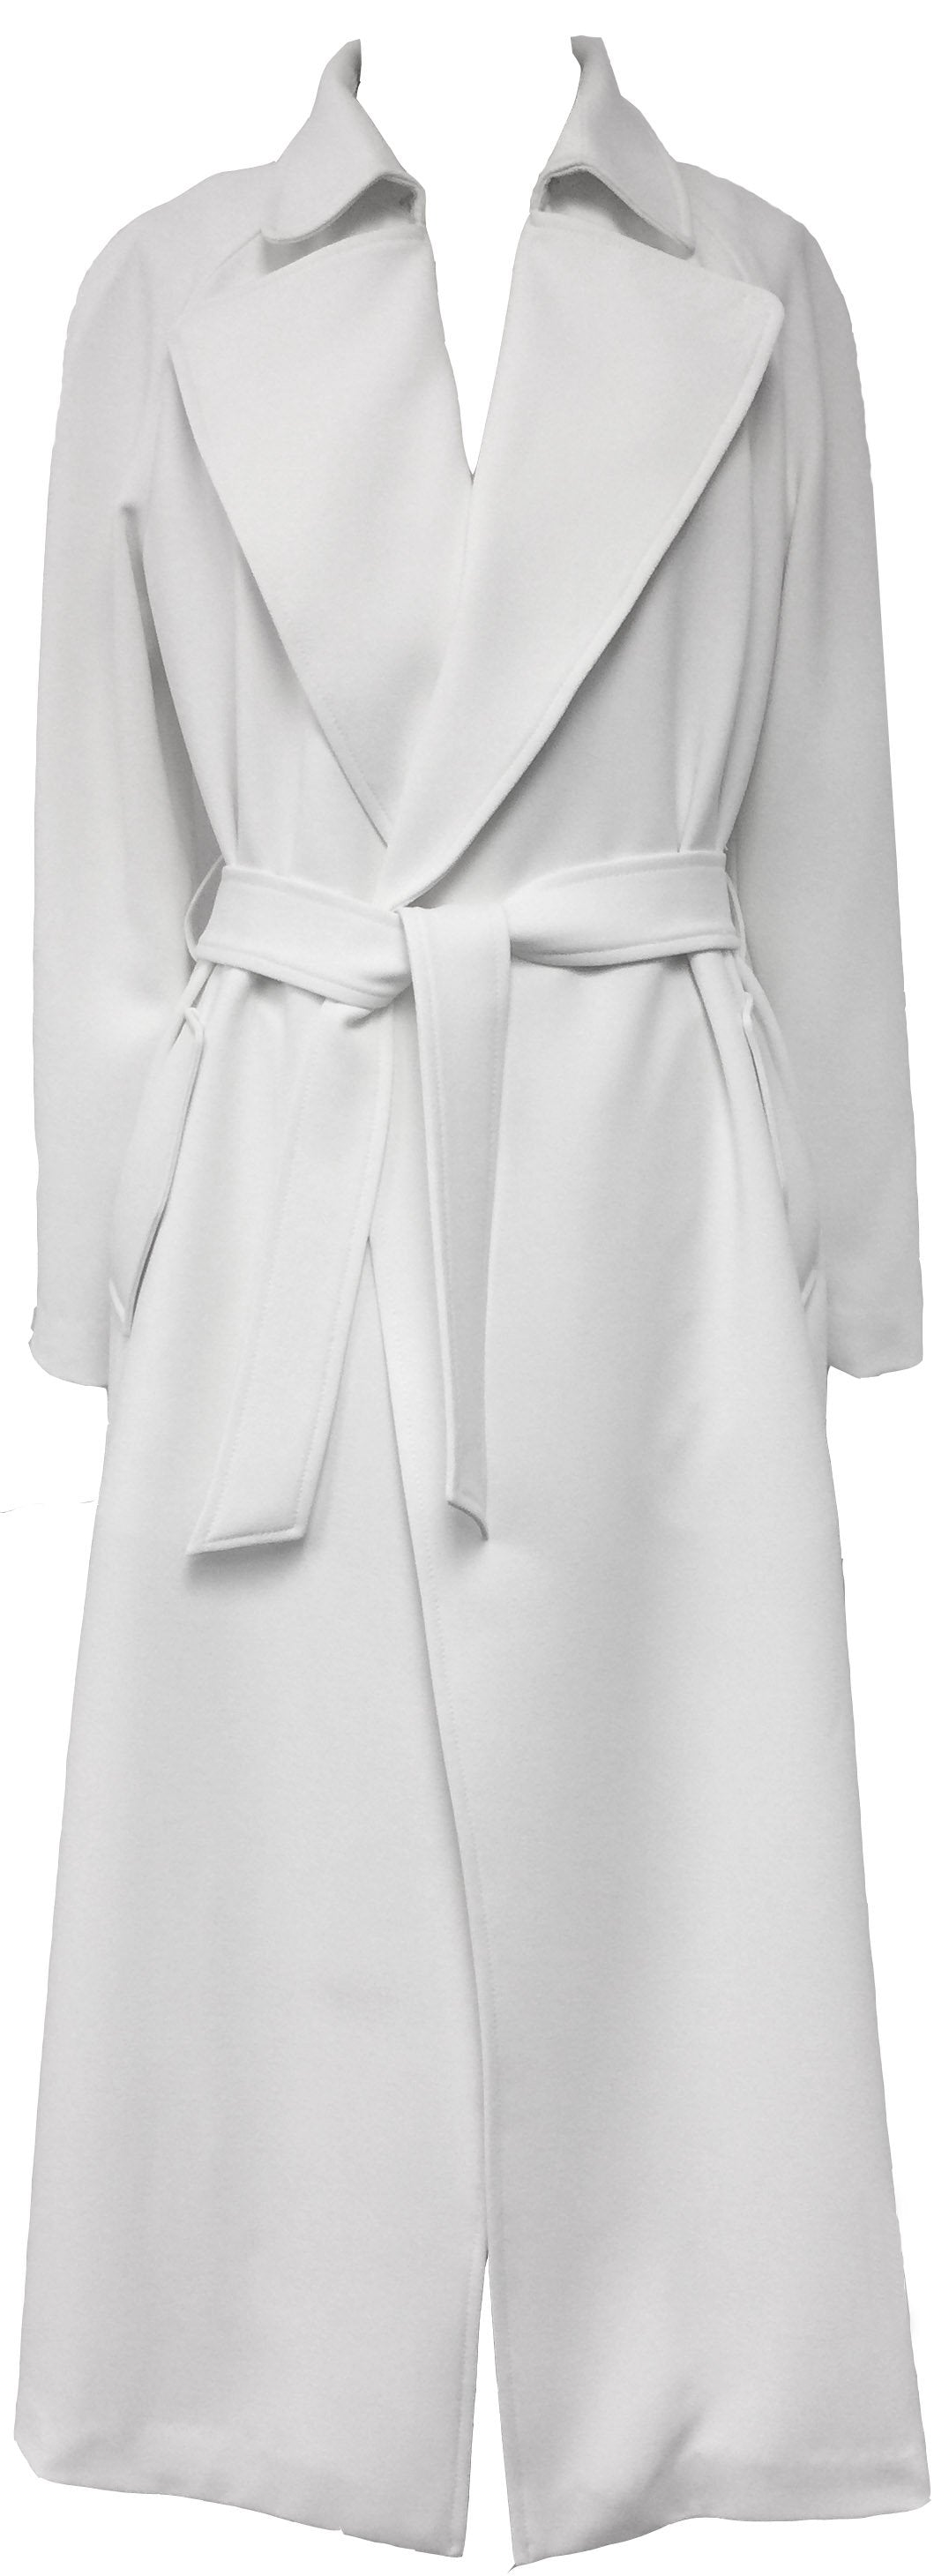 WHITE LONG TRENCH COAT